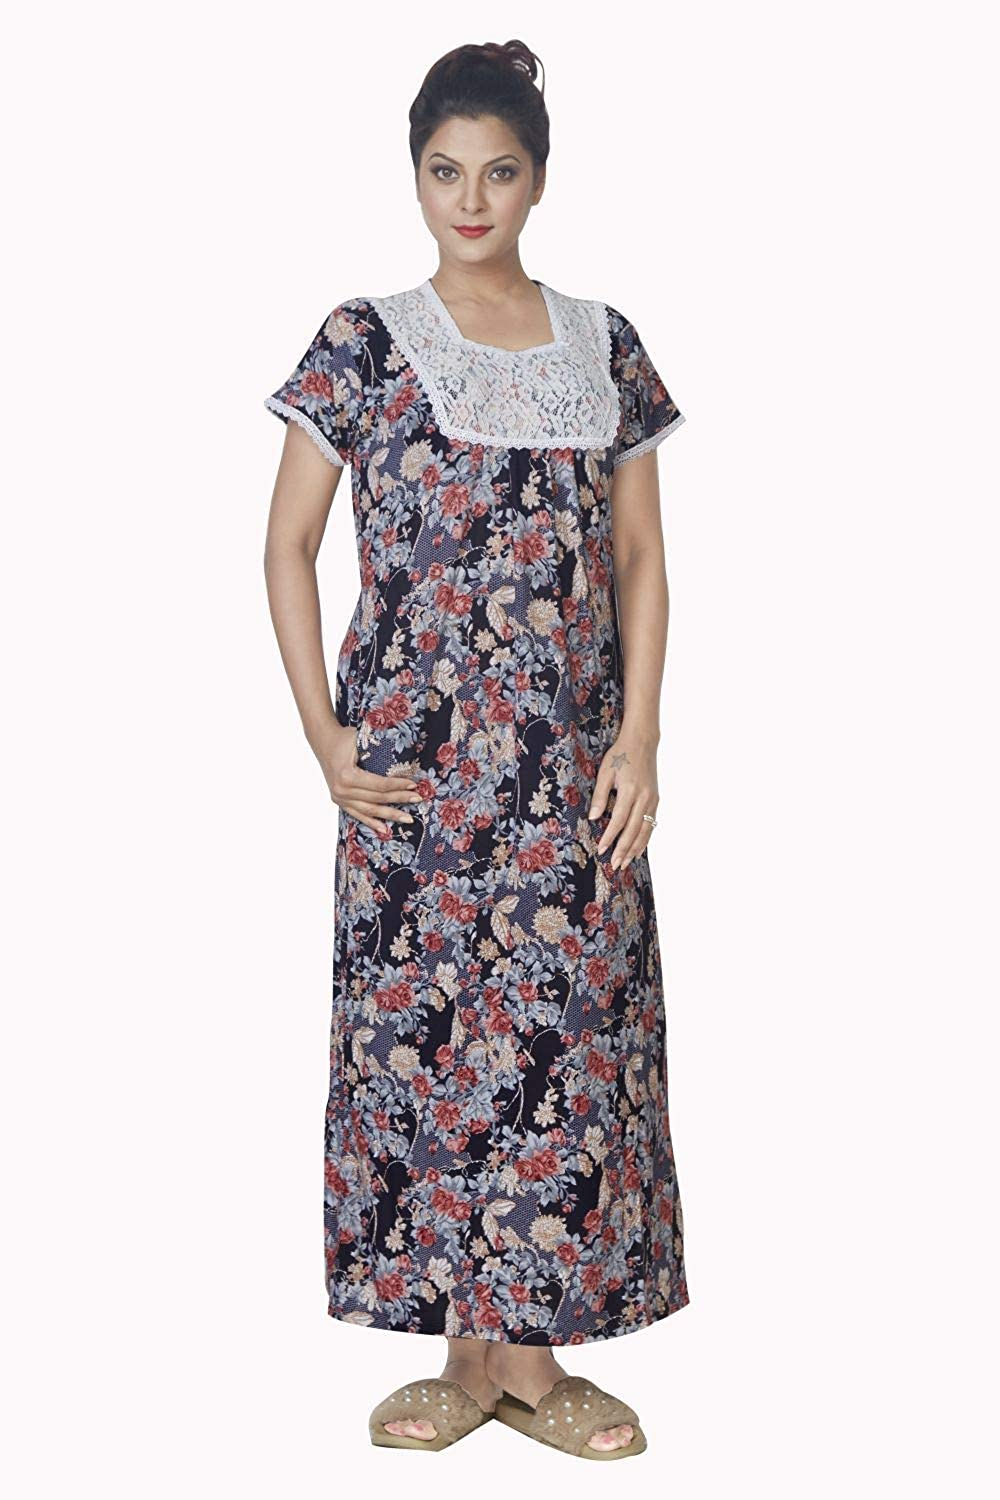 73886fce1e IMJI Nightwear Blue Floral Printed Long Nighty with Pocket for Women:  Amazon.in: Clothing & Accessories